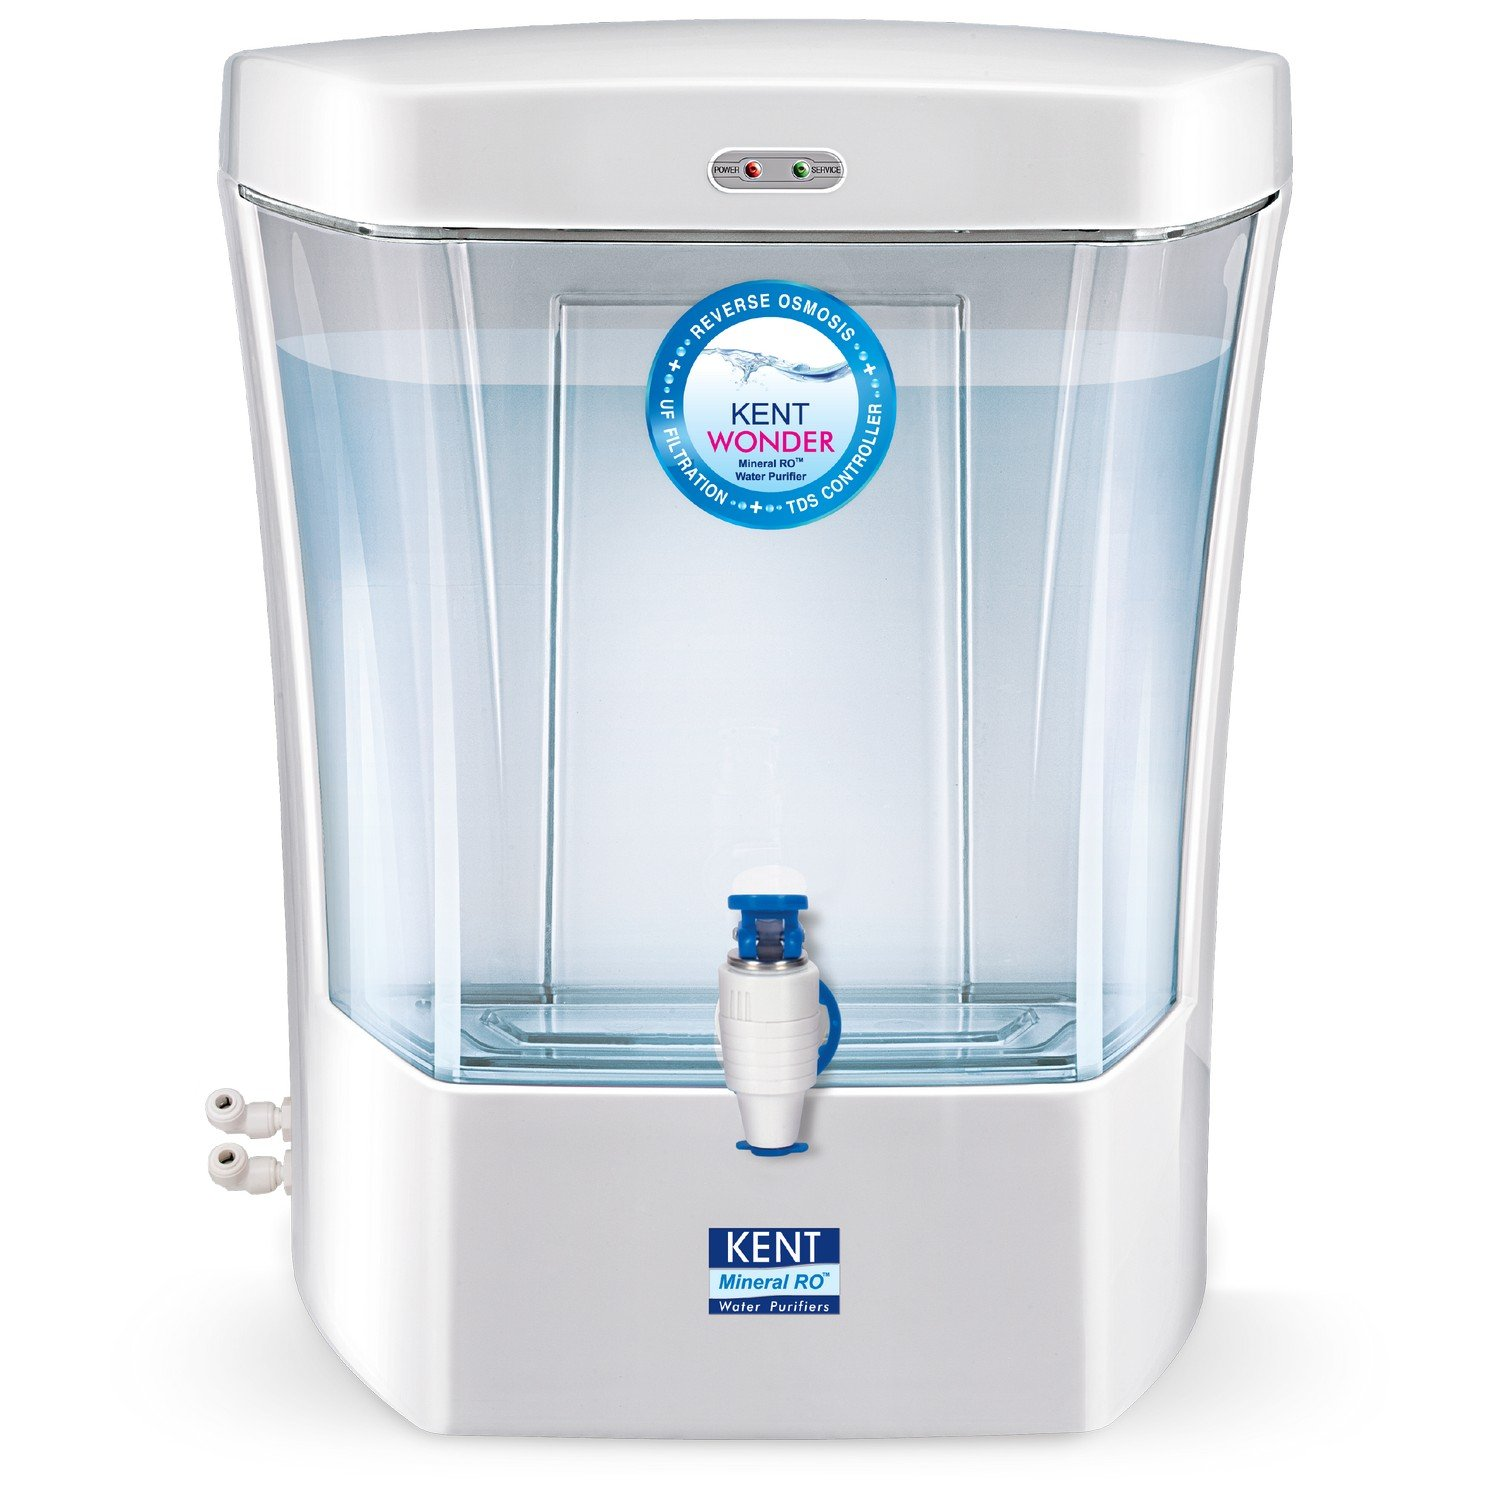 Water Purifier For Home Kent Wonder 7 Litre Ro Water Purifier Pearl White Amazonin